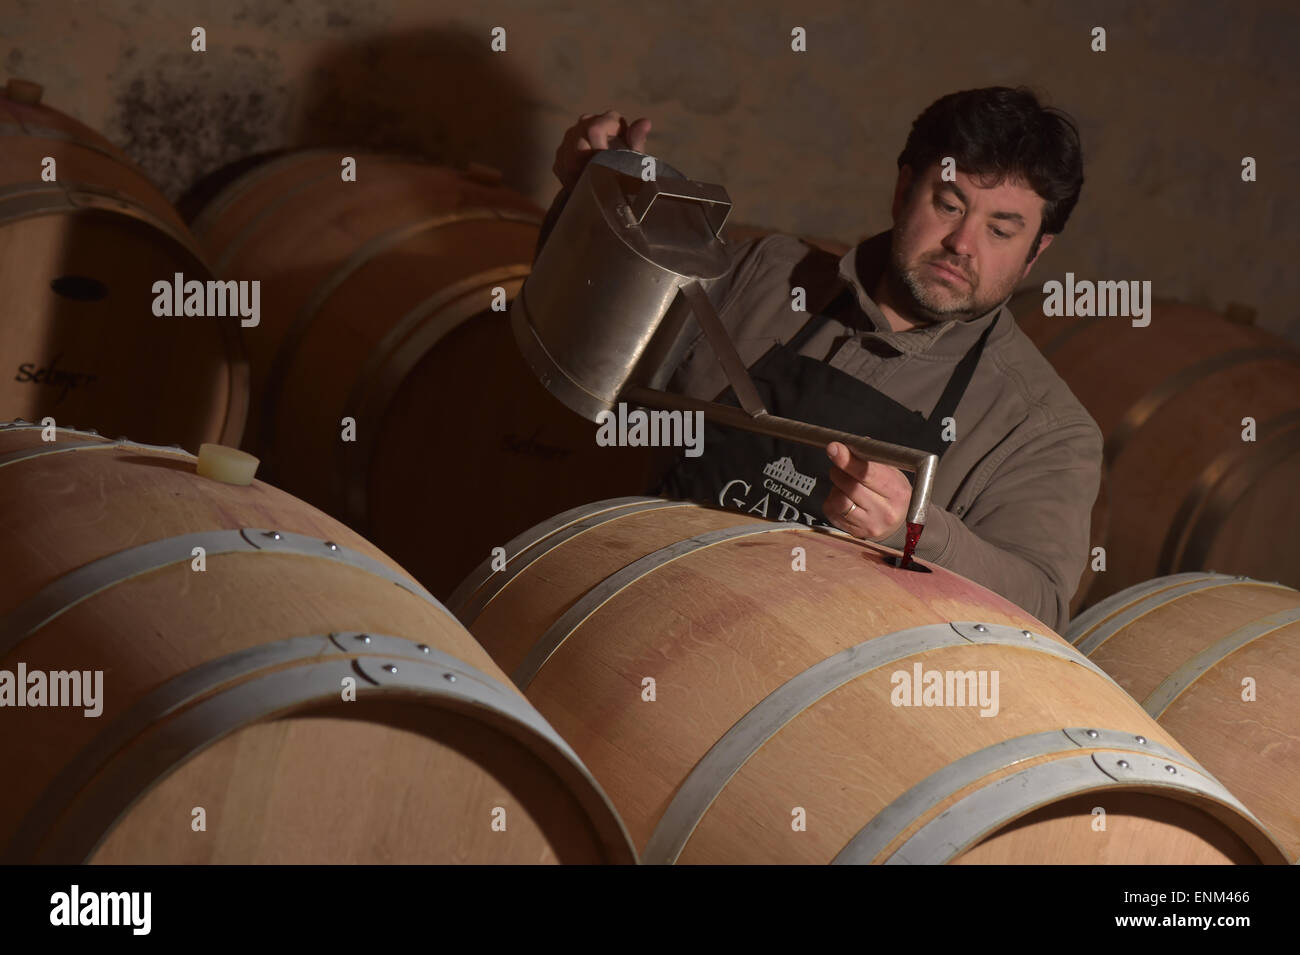 Winemaker Decanting wine in a barrel's cellar - Stock Image